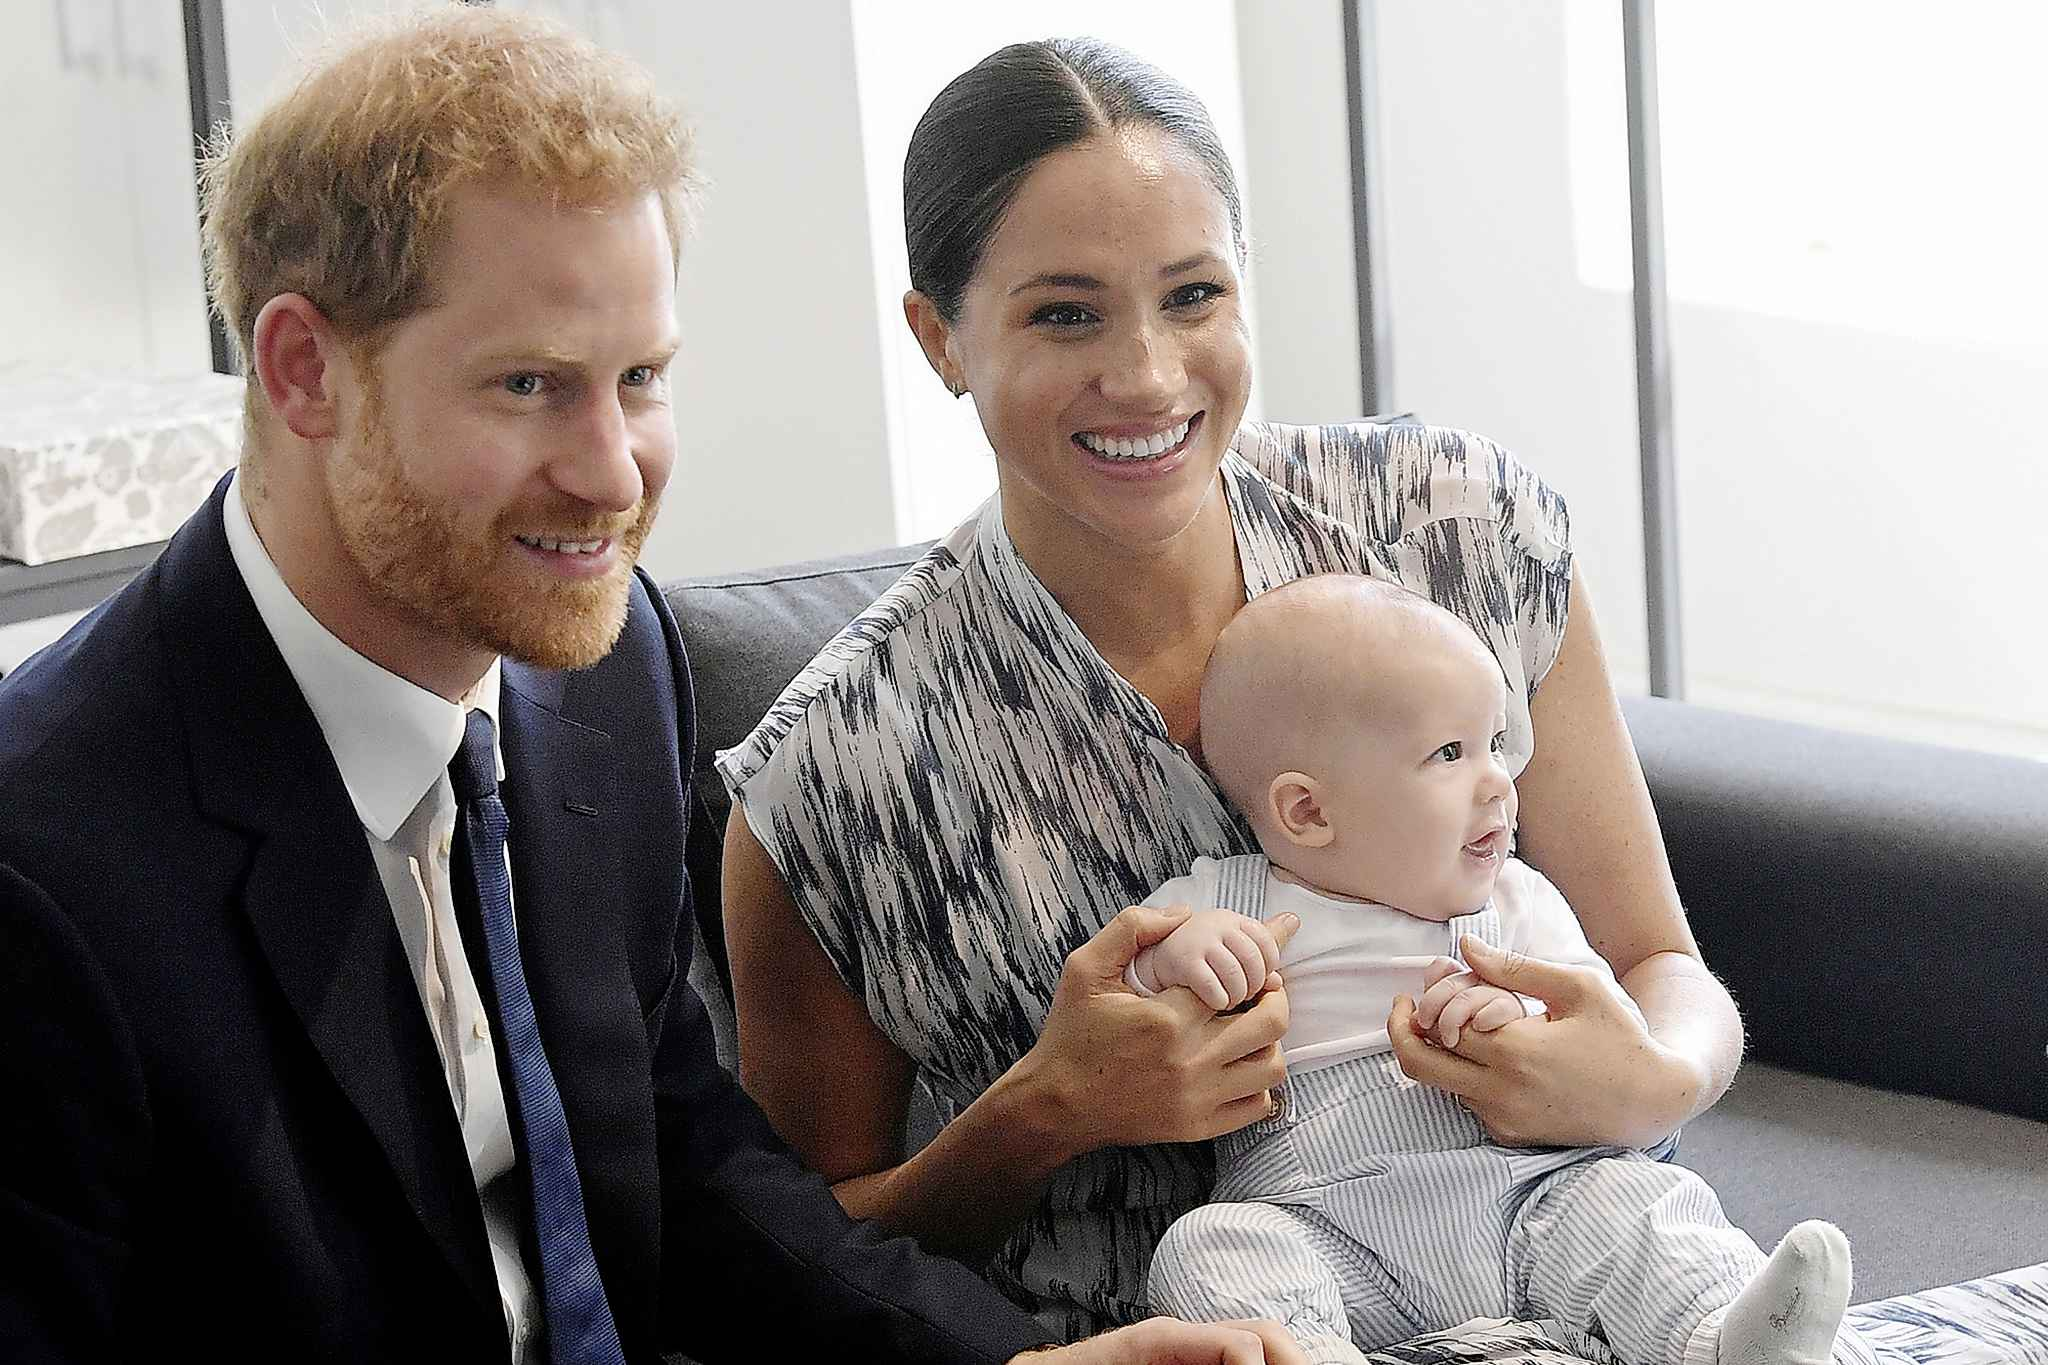 Prince Harry, Duke of Sussex, Meghan, Duchess of Sussex and their baby son Archie Mountbatten-Windsor are striking out on their own. (Toby Melville/Getty Images/TNS)